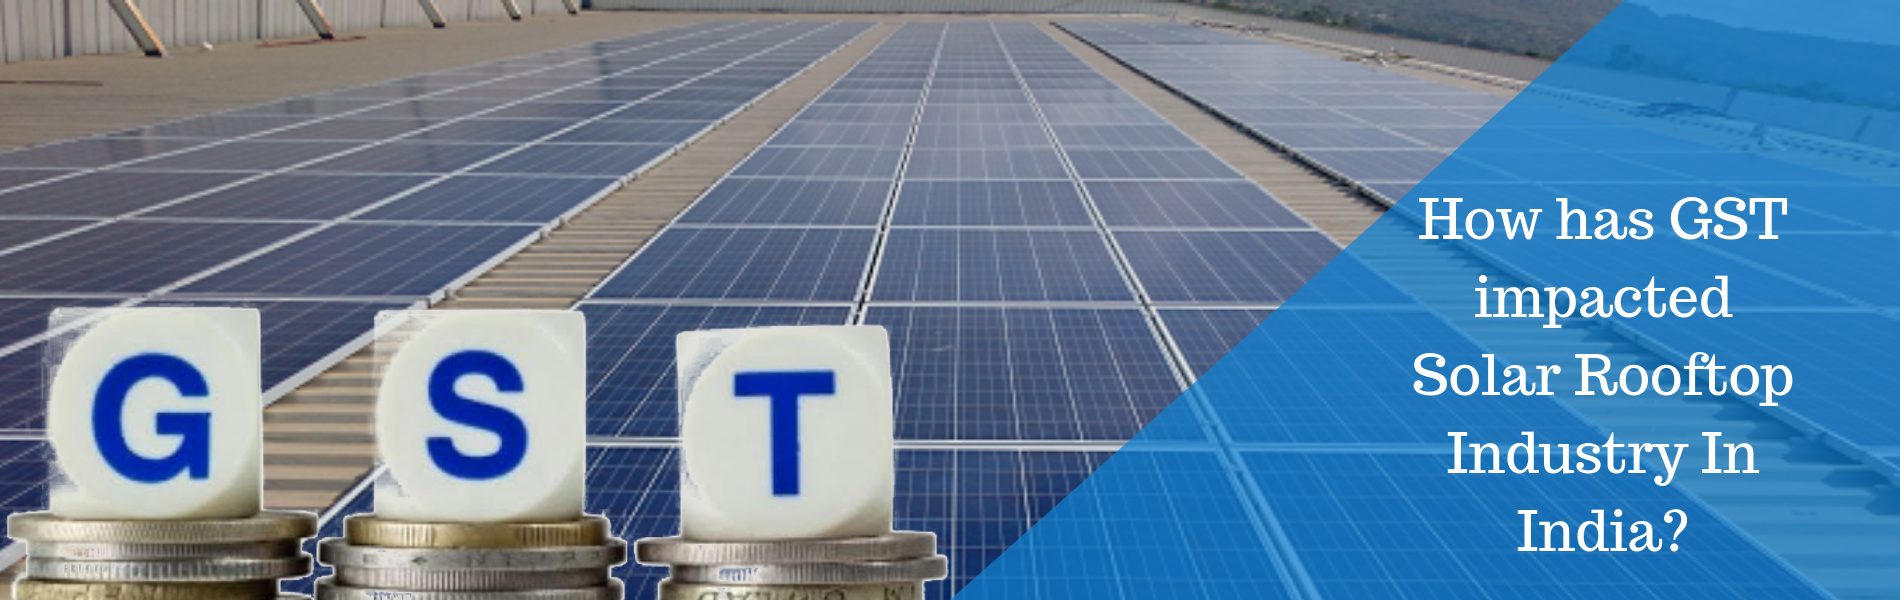 How has GST impacted Solar Rooftop Industry In India?